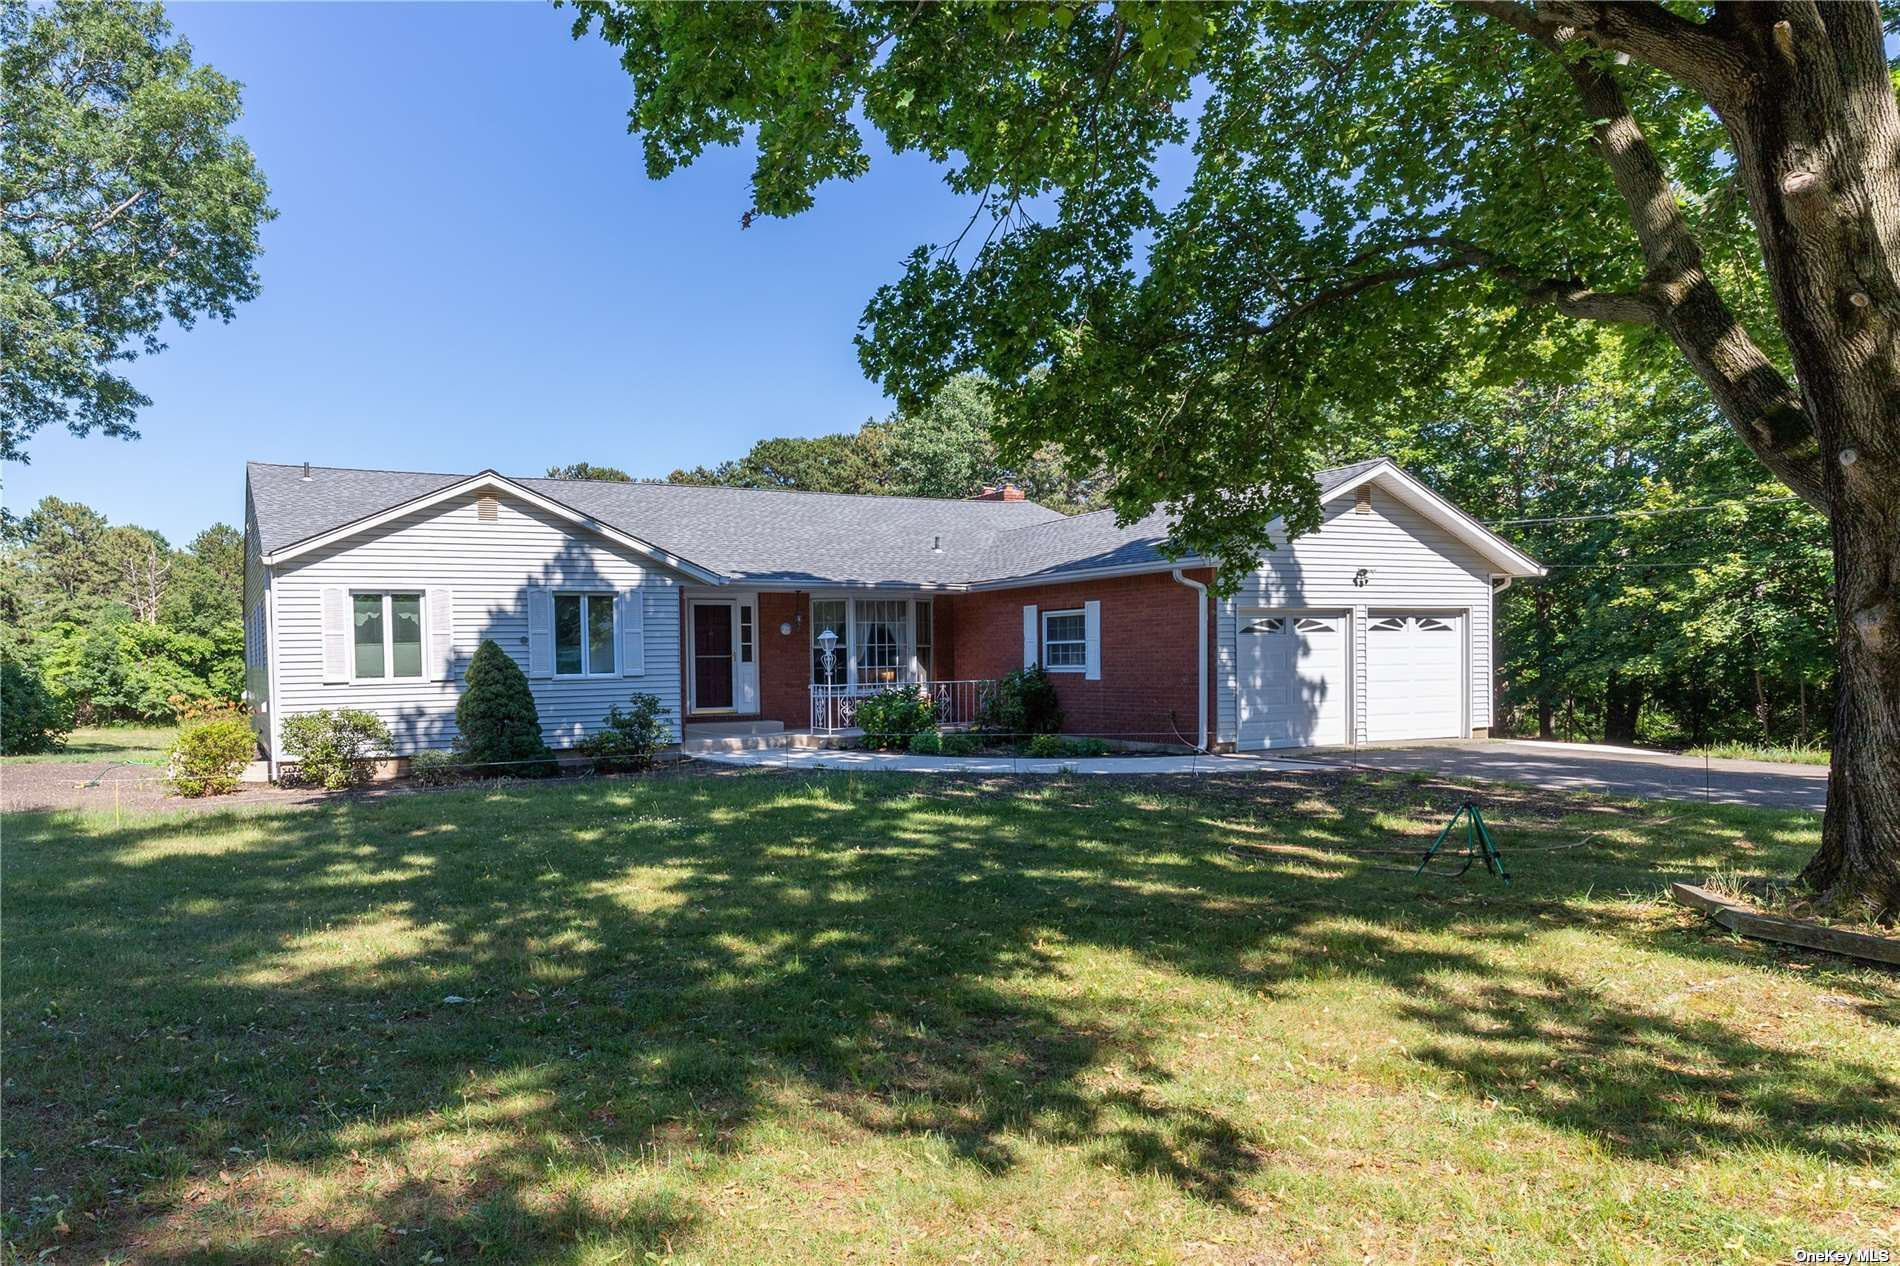 35 Helme Avenue, Miller Place, NY 11764 - MLS#: 3324902